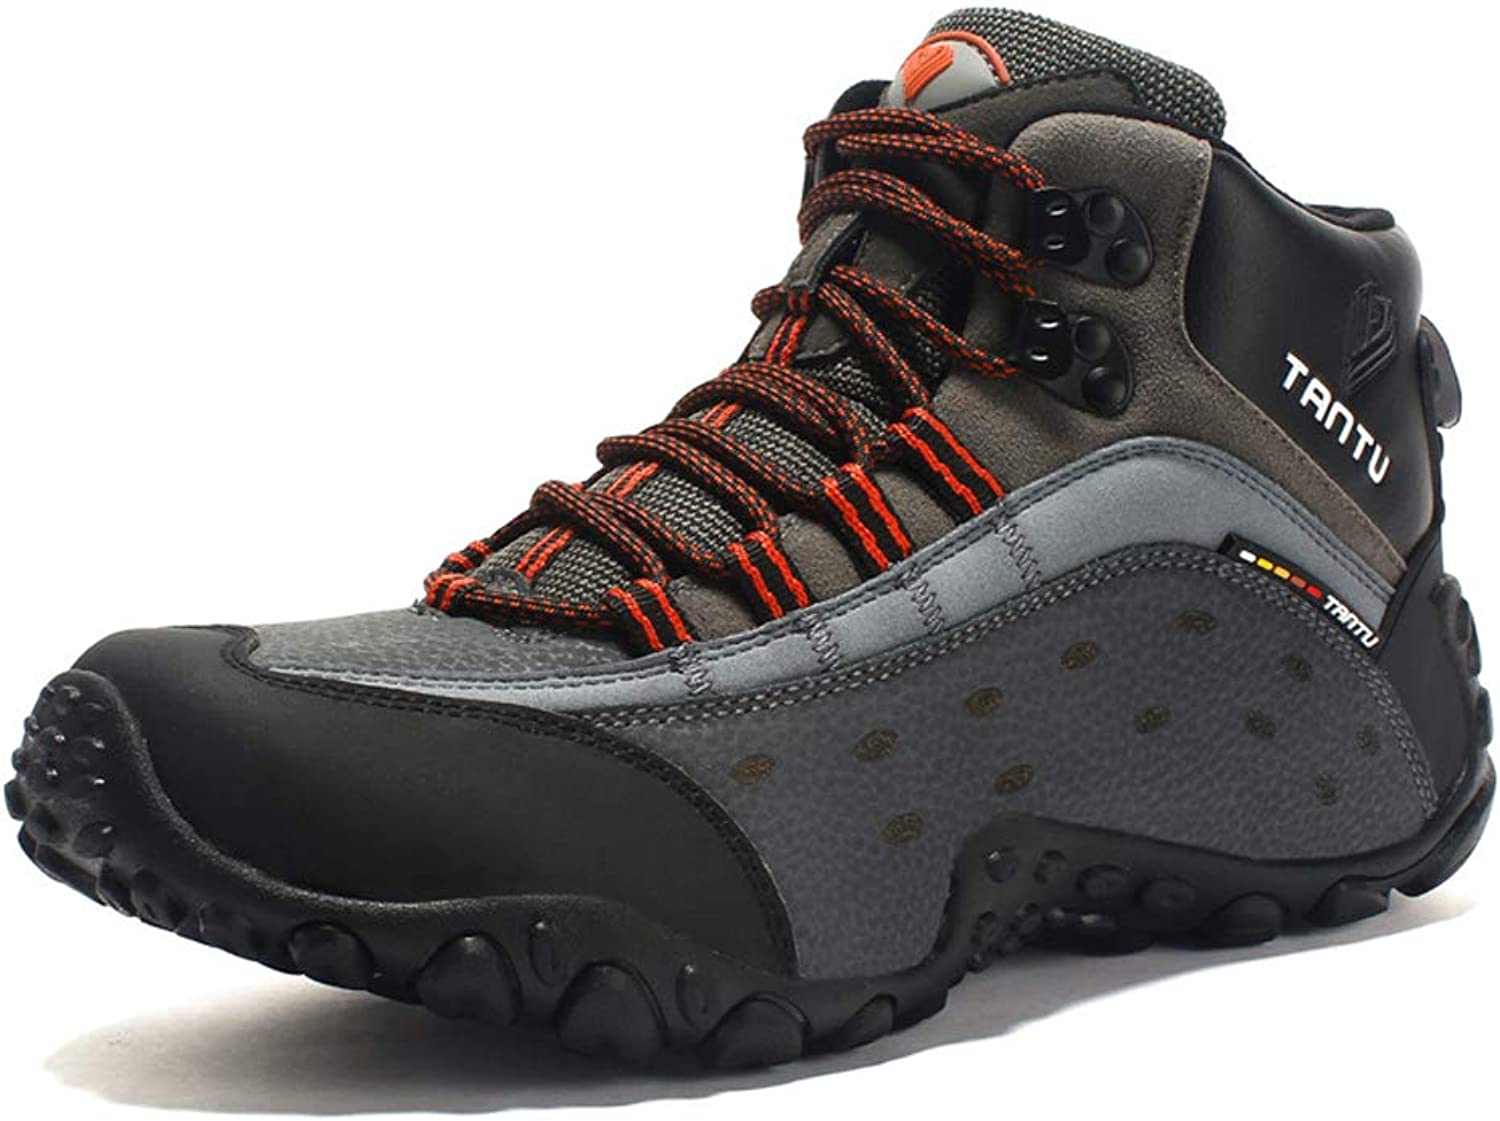 Hiking shoes Men's Sports shoes Autumn And Winter High To Help Outdoor Leather Walking shoes